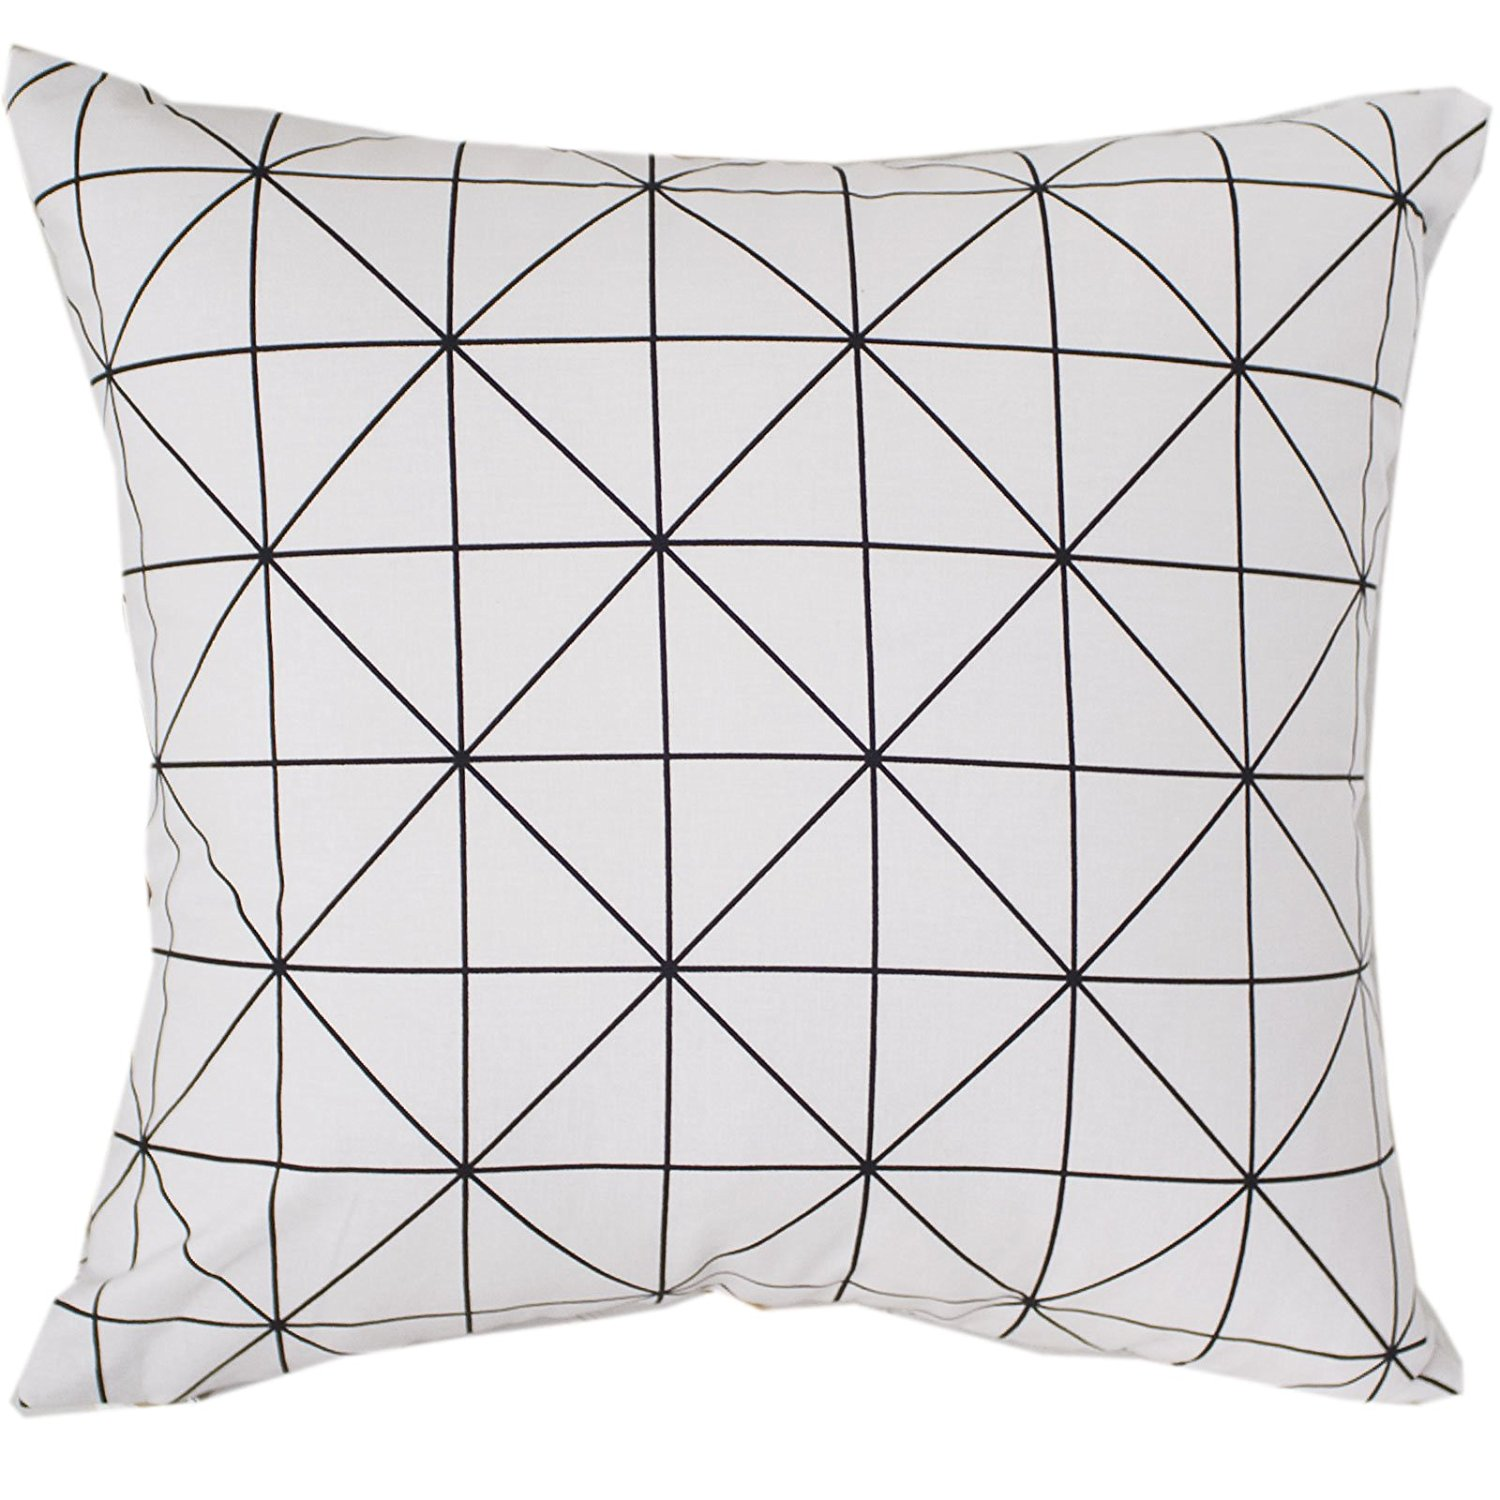 """Evei Square Pattern Gray Color Cotton Home Decorative Throw Pillow Case / Cushion Cover Square 16"""" 18"""" 20"""" Choice (20""""x20""""inch(50x50cm))"""